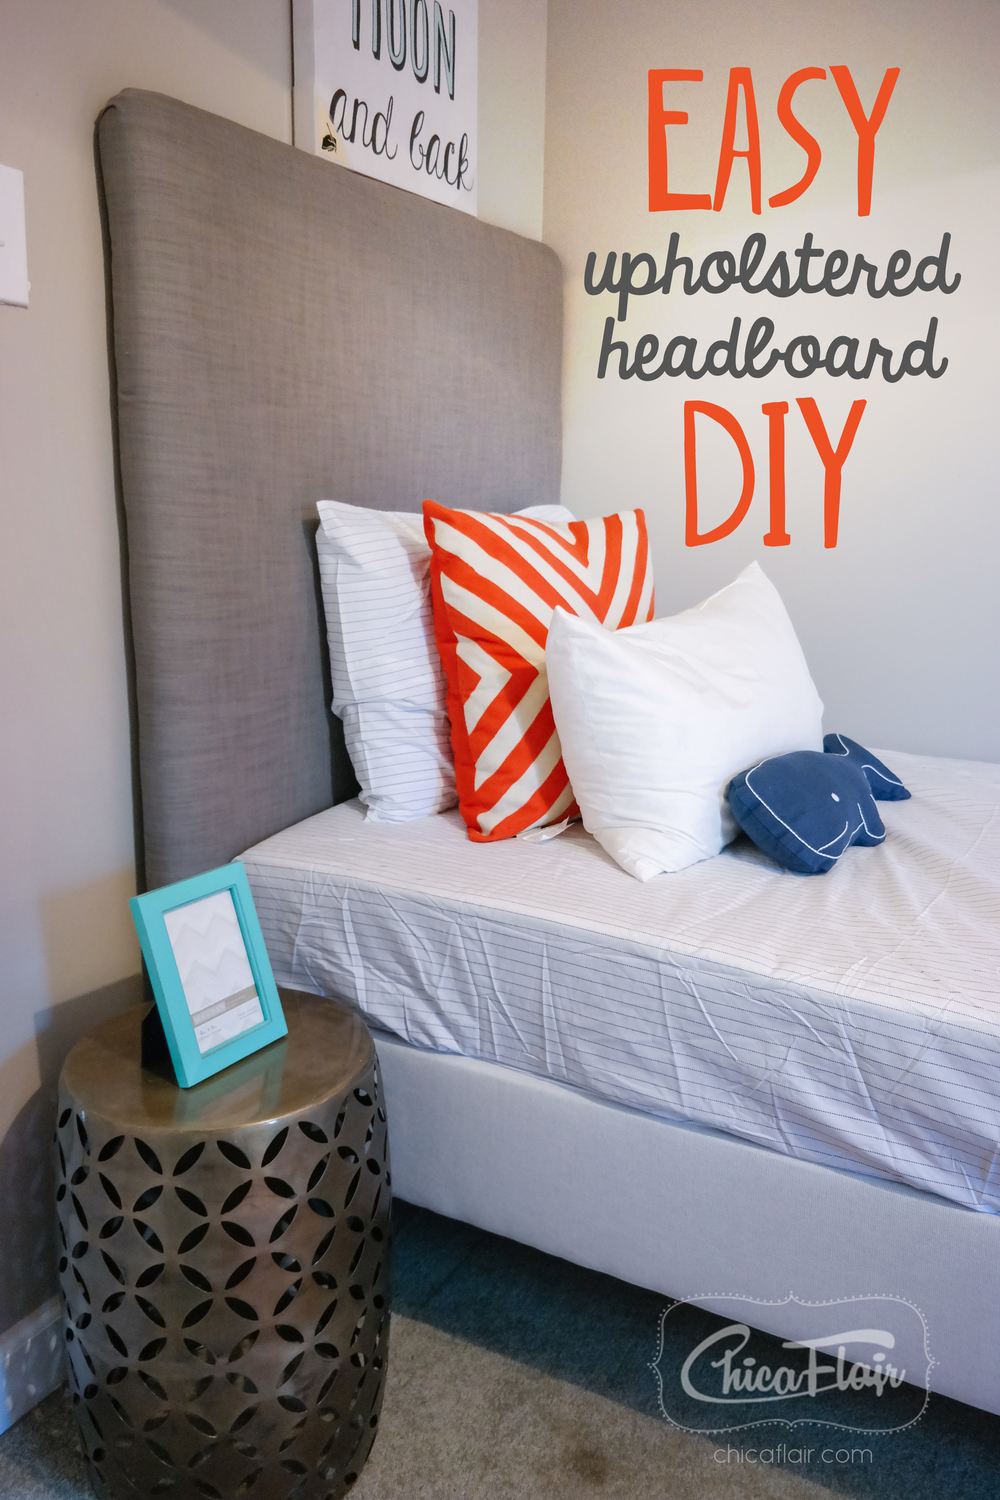 Easy upholstered headboard diy chicaflair for Cheap easy to make headboards